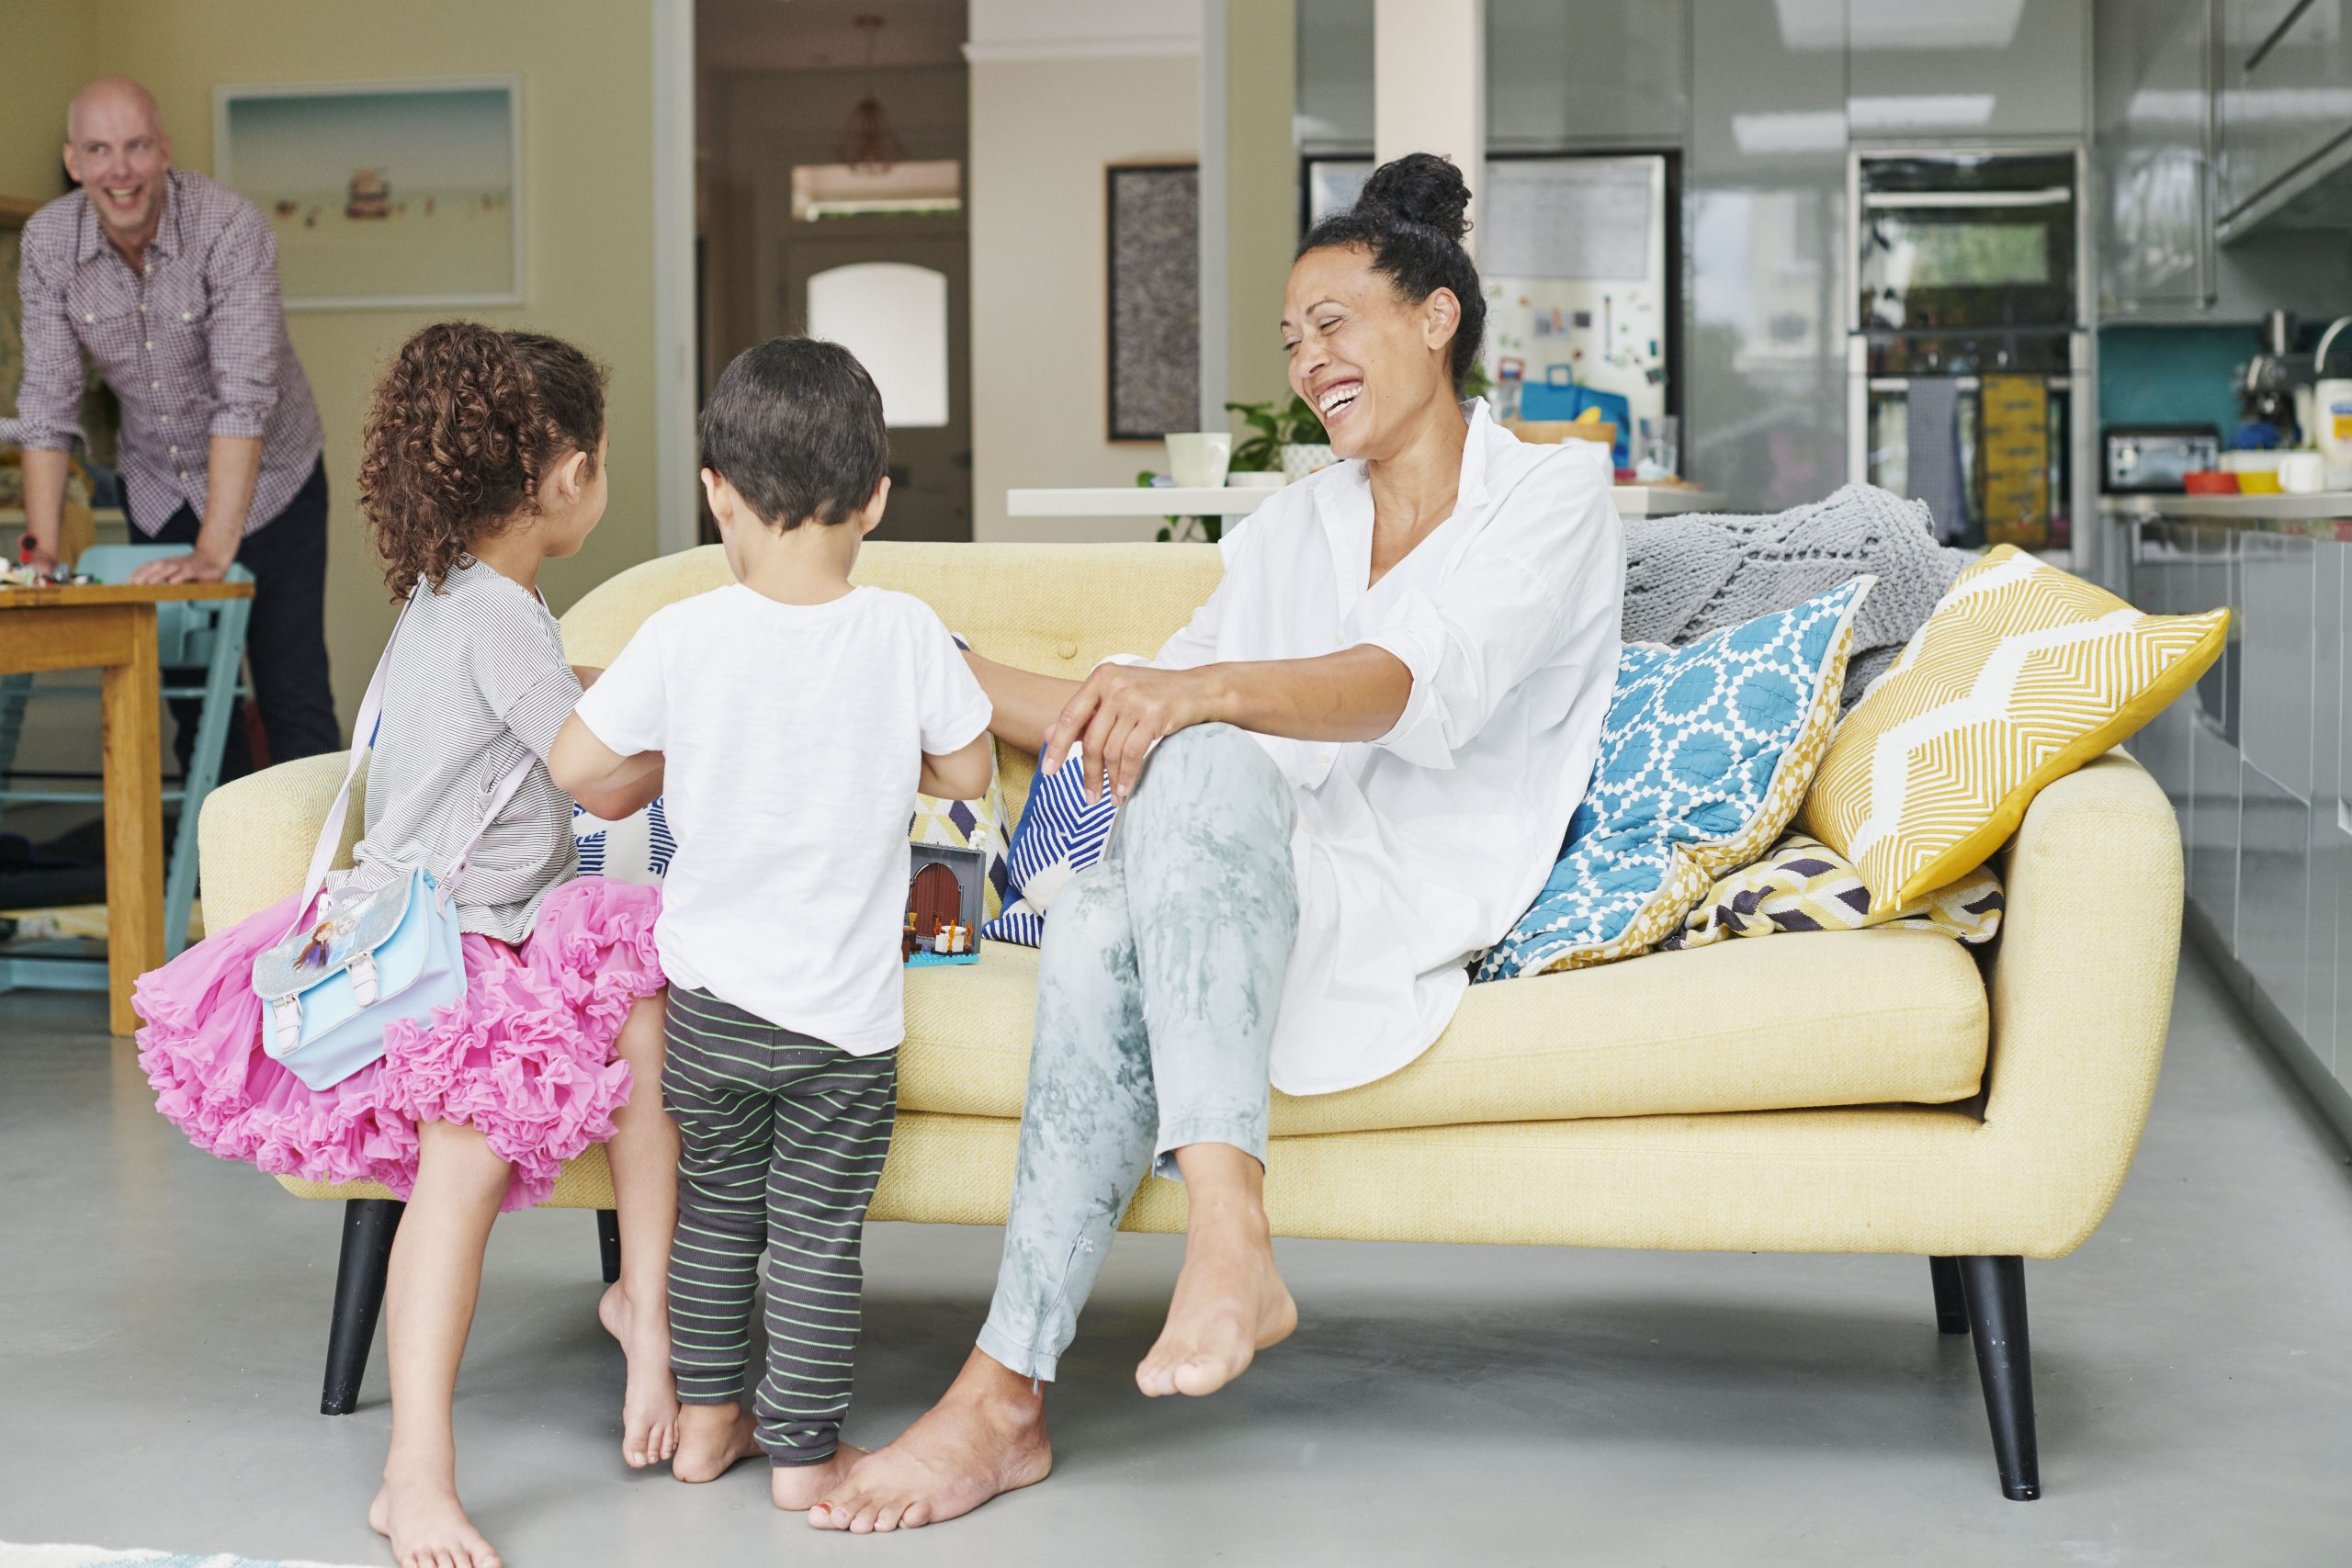 Not just for nights out: 5 other reasons parents book a babysitter on Bubble